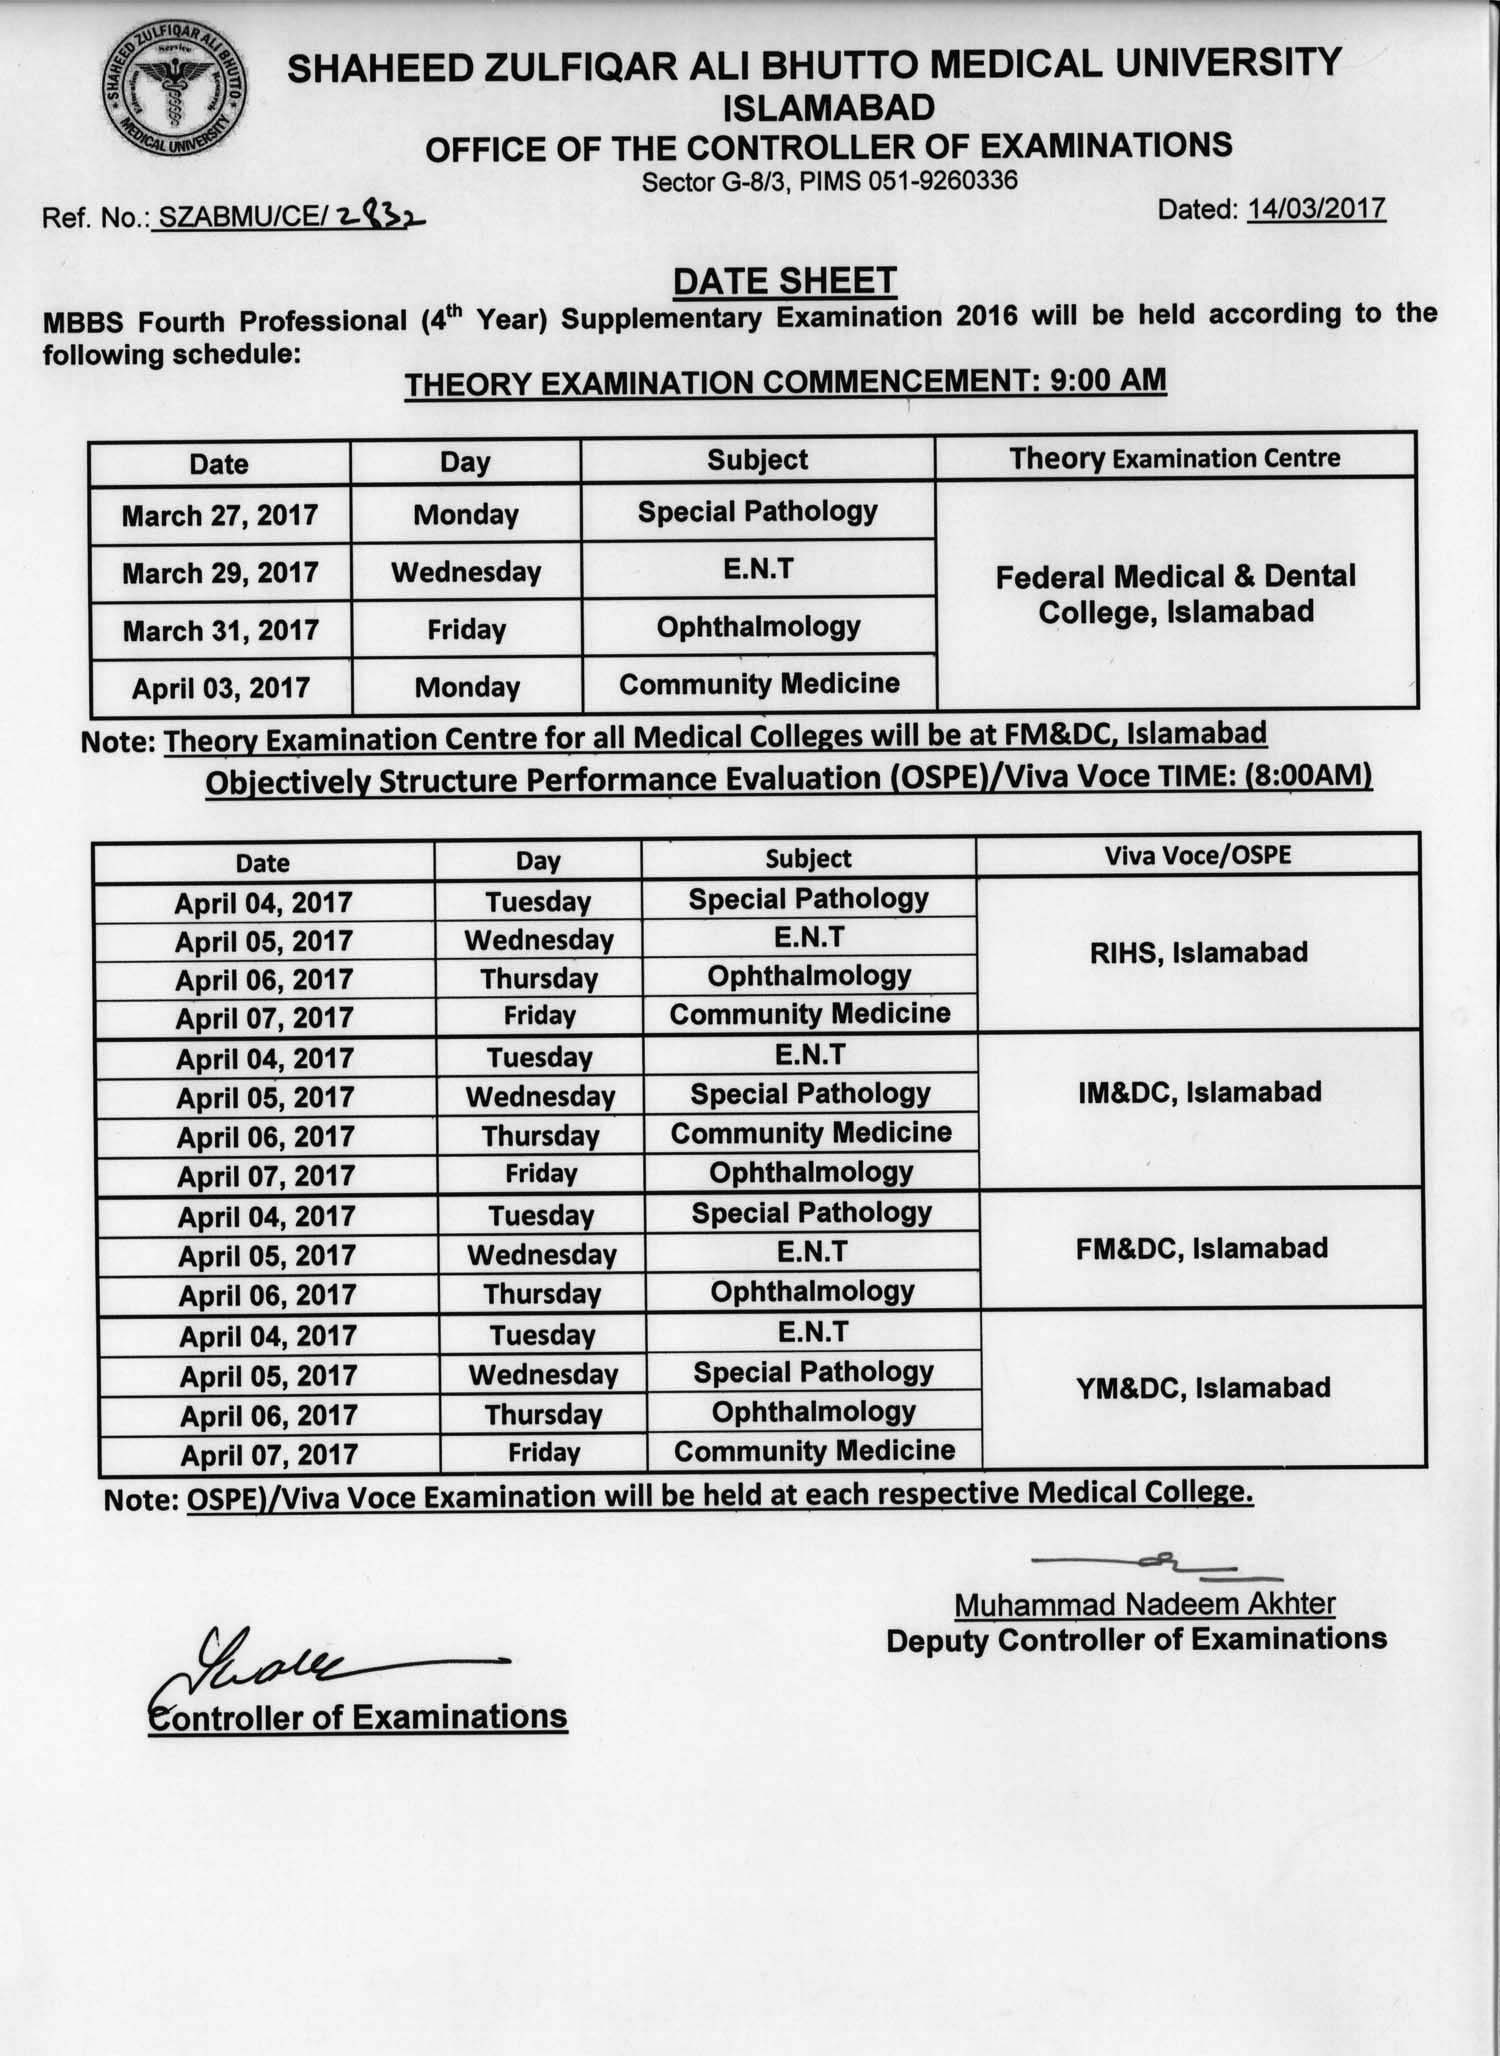 Date Sheet - MBBS 4th and Final Professional Supplementary Exams 2016